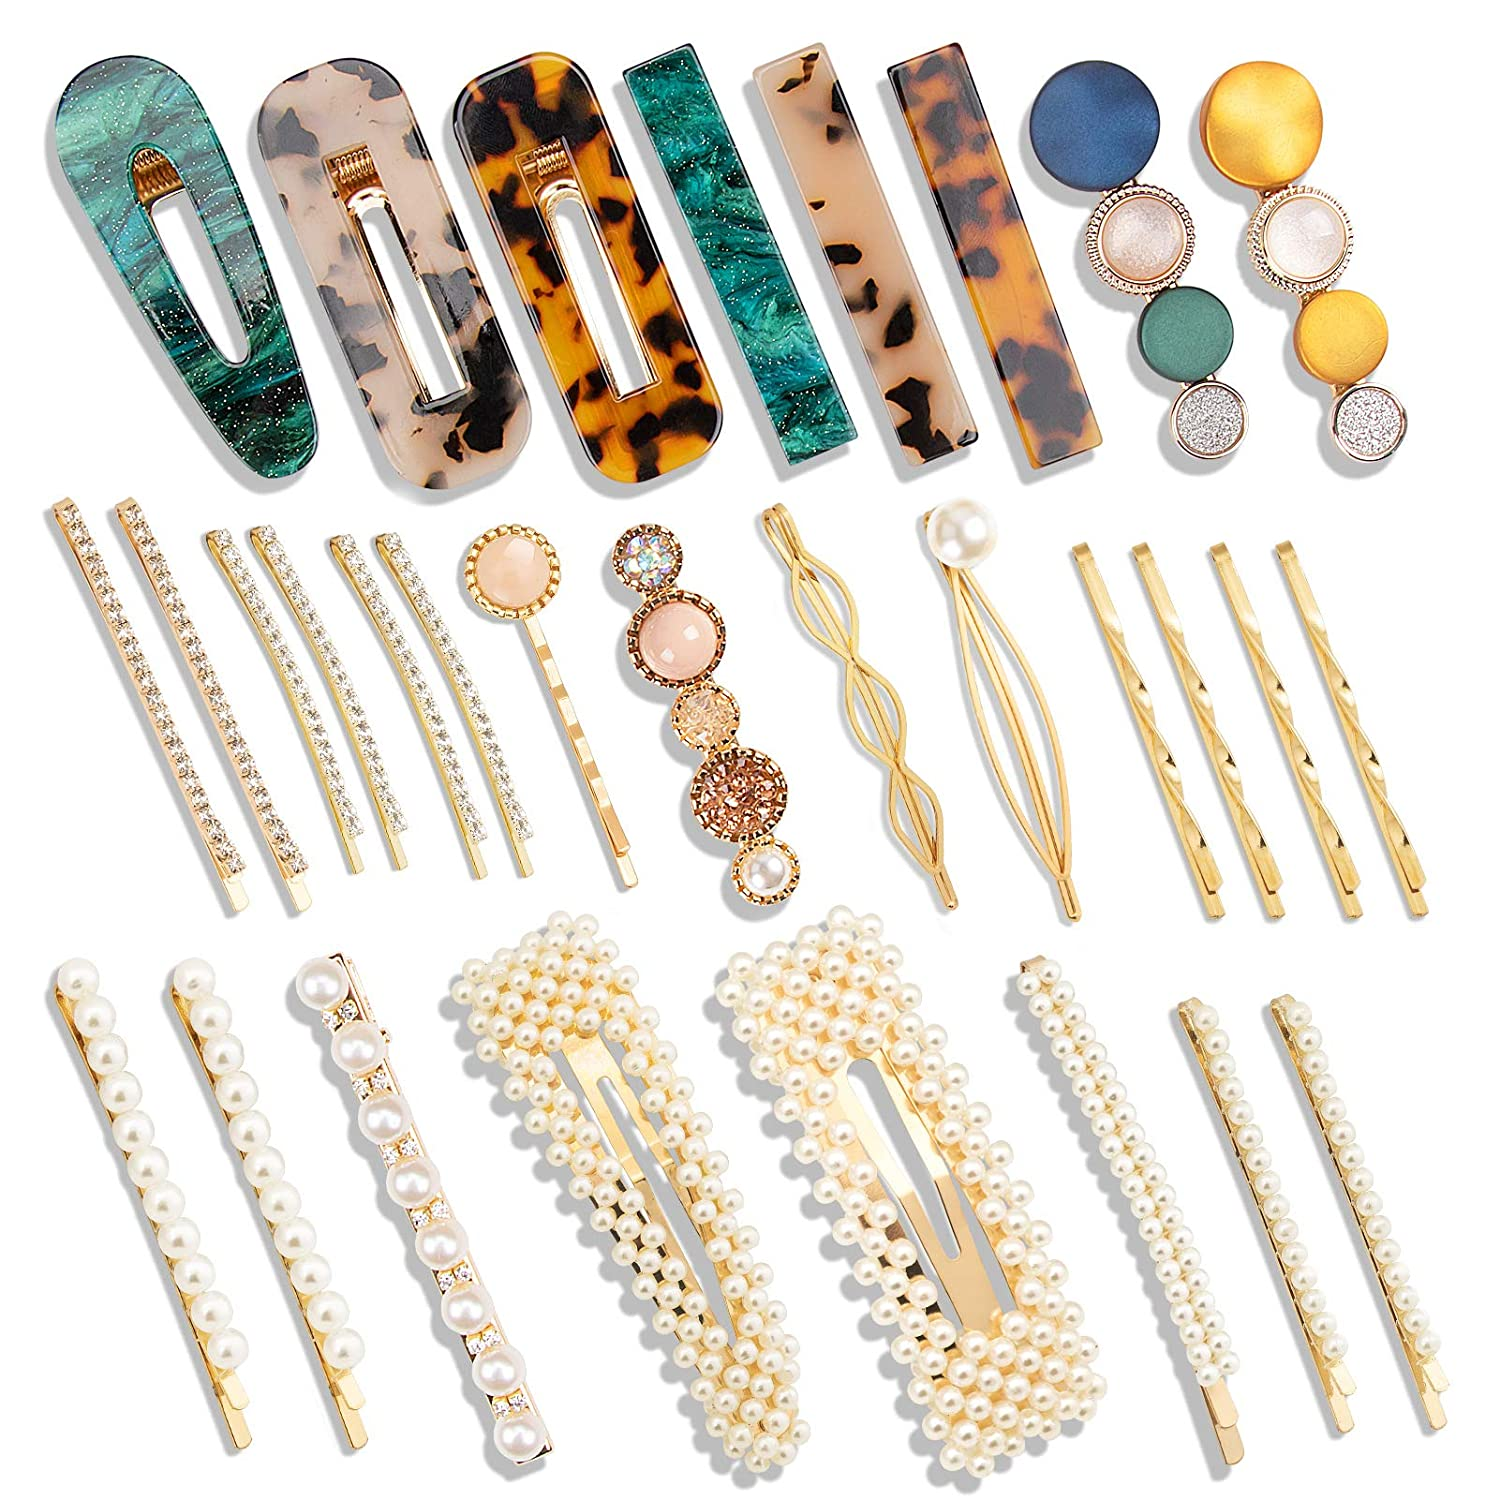 30 PCS Fashion Hair Clips Set,Pearls and Acrylic Resin Hair Clips,Handmade Hair Barrettes,Elegant Gold Hair Accessories, Gifts for Women and Party Wedding Gifts